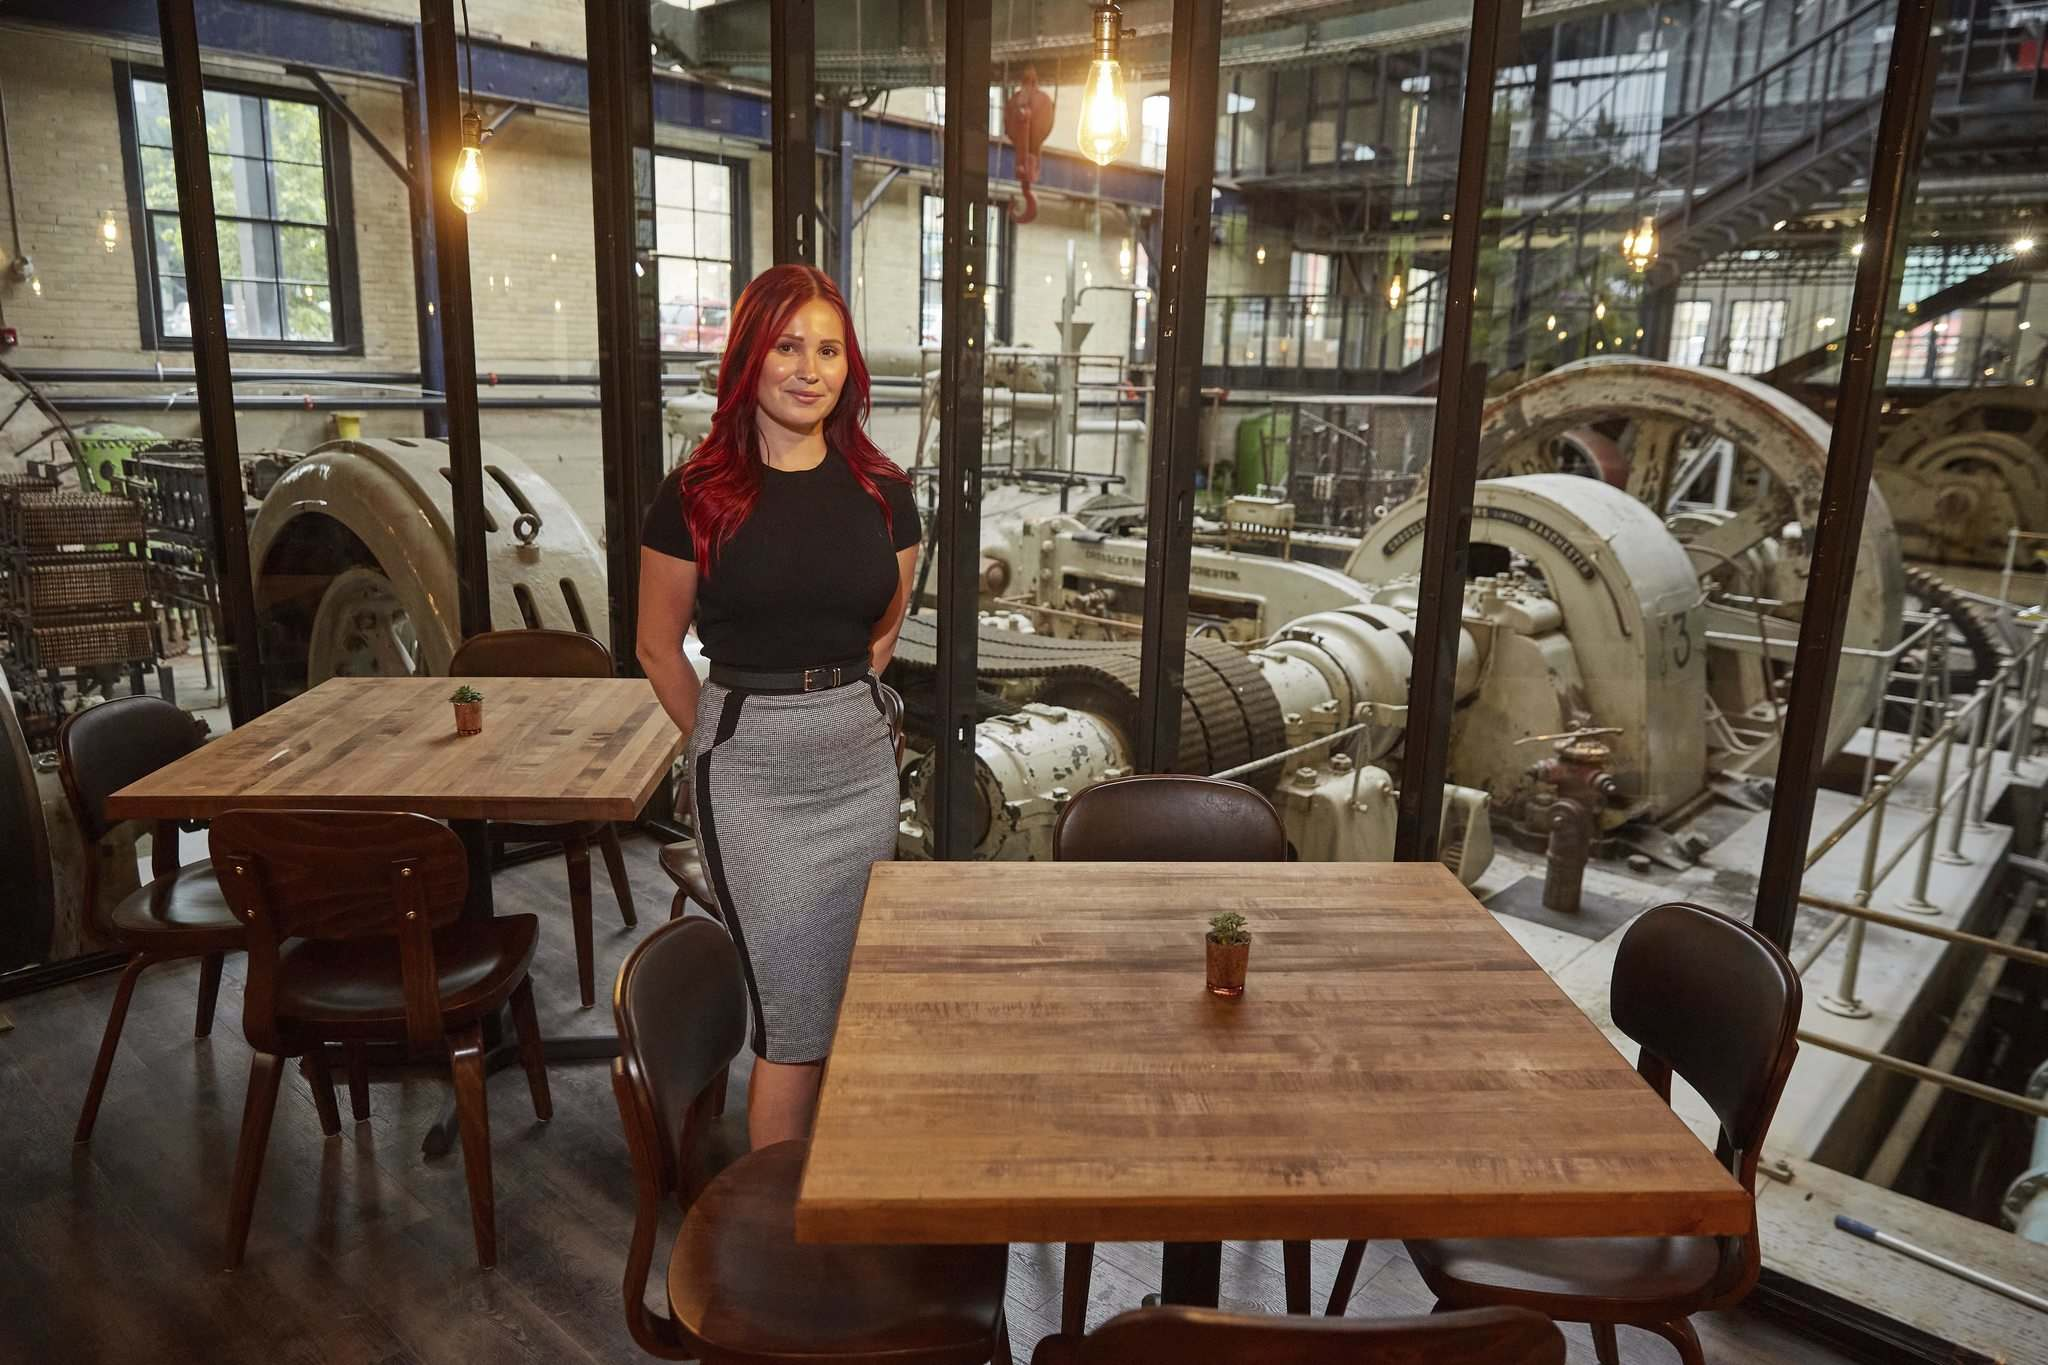 MIKE DEAL / WINNIPEG FREE PRESS</p><p>General Manager Kaitlin Nikkel at one of the tables that look out onto the preserved area of the pumphouse.</p></p>